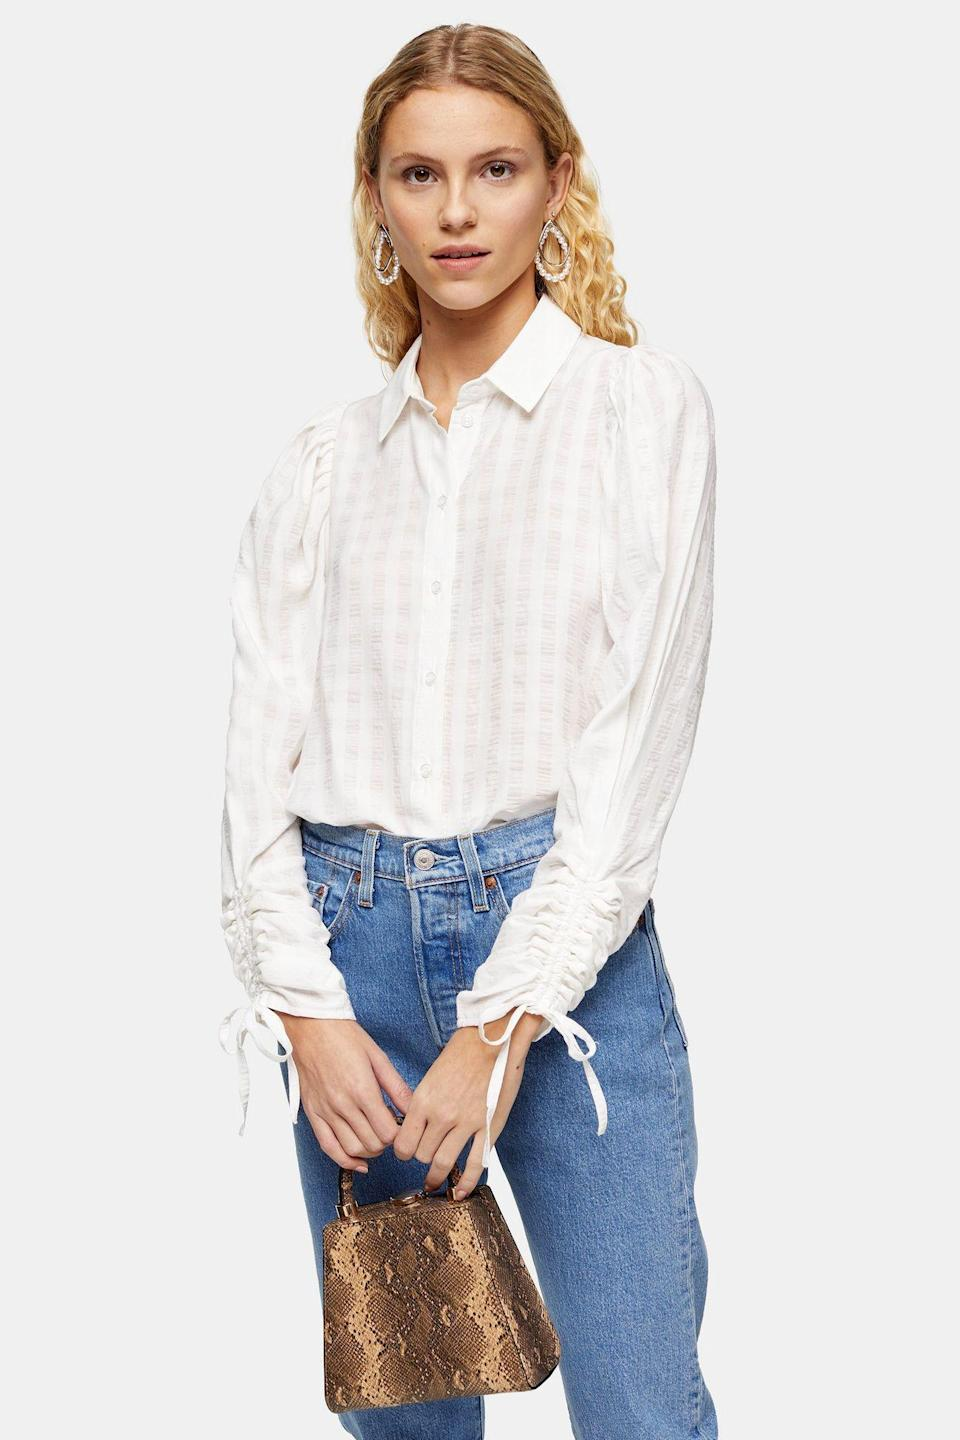 """<p><strong>Topshop</strong></p><p>topshop.com</p><p><strong>$37.50</strong></p><p><a href=""""https://go.redirectingat.com?id=74968X1596630&url=https%3A%2F%2Fus.topshop.com%2Fen%2Ftsus%2Fproduct%2Fwhite-drawstring-sleeve-shirt-9935732&sref=https%3A%2F%2Fwww.cosmopolitan.com%2Fstyle-beauty%2Ffashion%2Fg30933395%2Ffall-fashion-trends-2020%2F"""" rel=""""nofollow noopener"""" target=""""_blank"""" data-ylk=""""slk:Shop Now"""" class=""""link rapid-noclick-resp"""">Shop Now</a></p><p>A button-up blouse with the ruched detail will zhuzh up your office attire. </p>"""